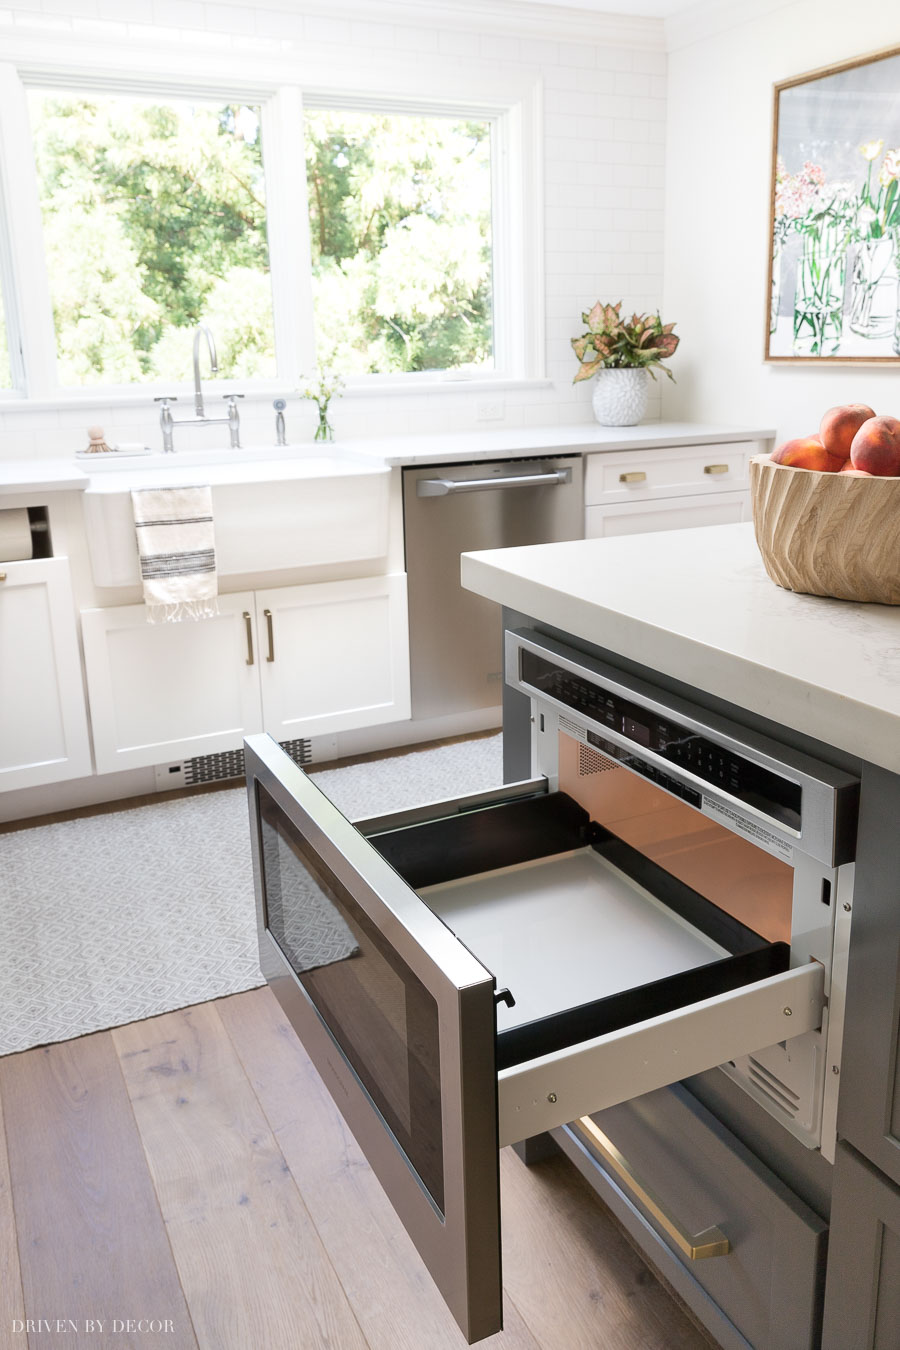 I wasn't sure if I would like having a microwave drawer in my kitchen island, but I LOVE it! More details about it in my kitchen remodel reveal!